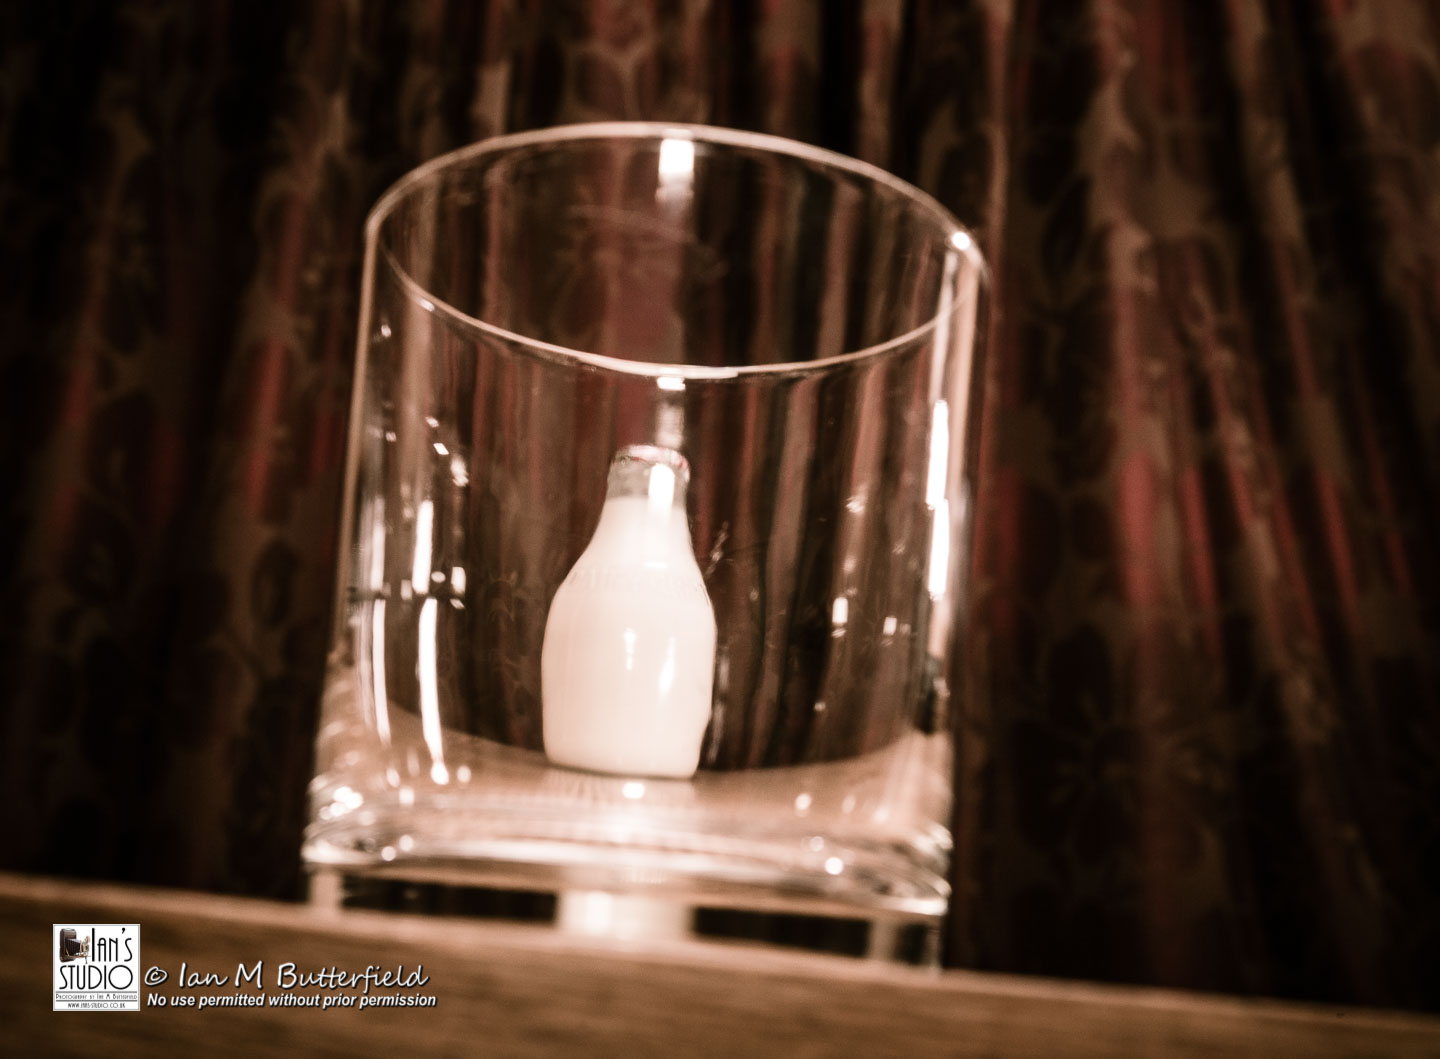 ACADEMY BITE: Photo shoots at home #4 – Putting a pint in to a half pint glass